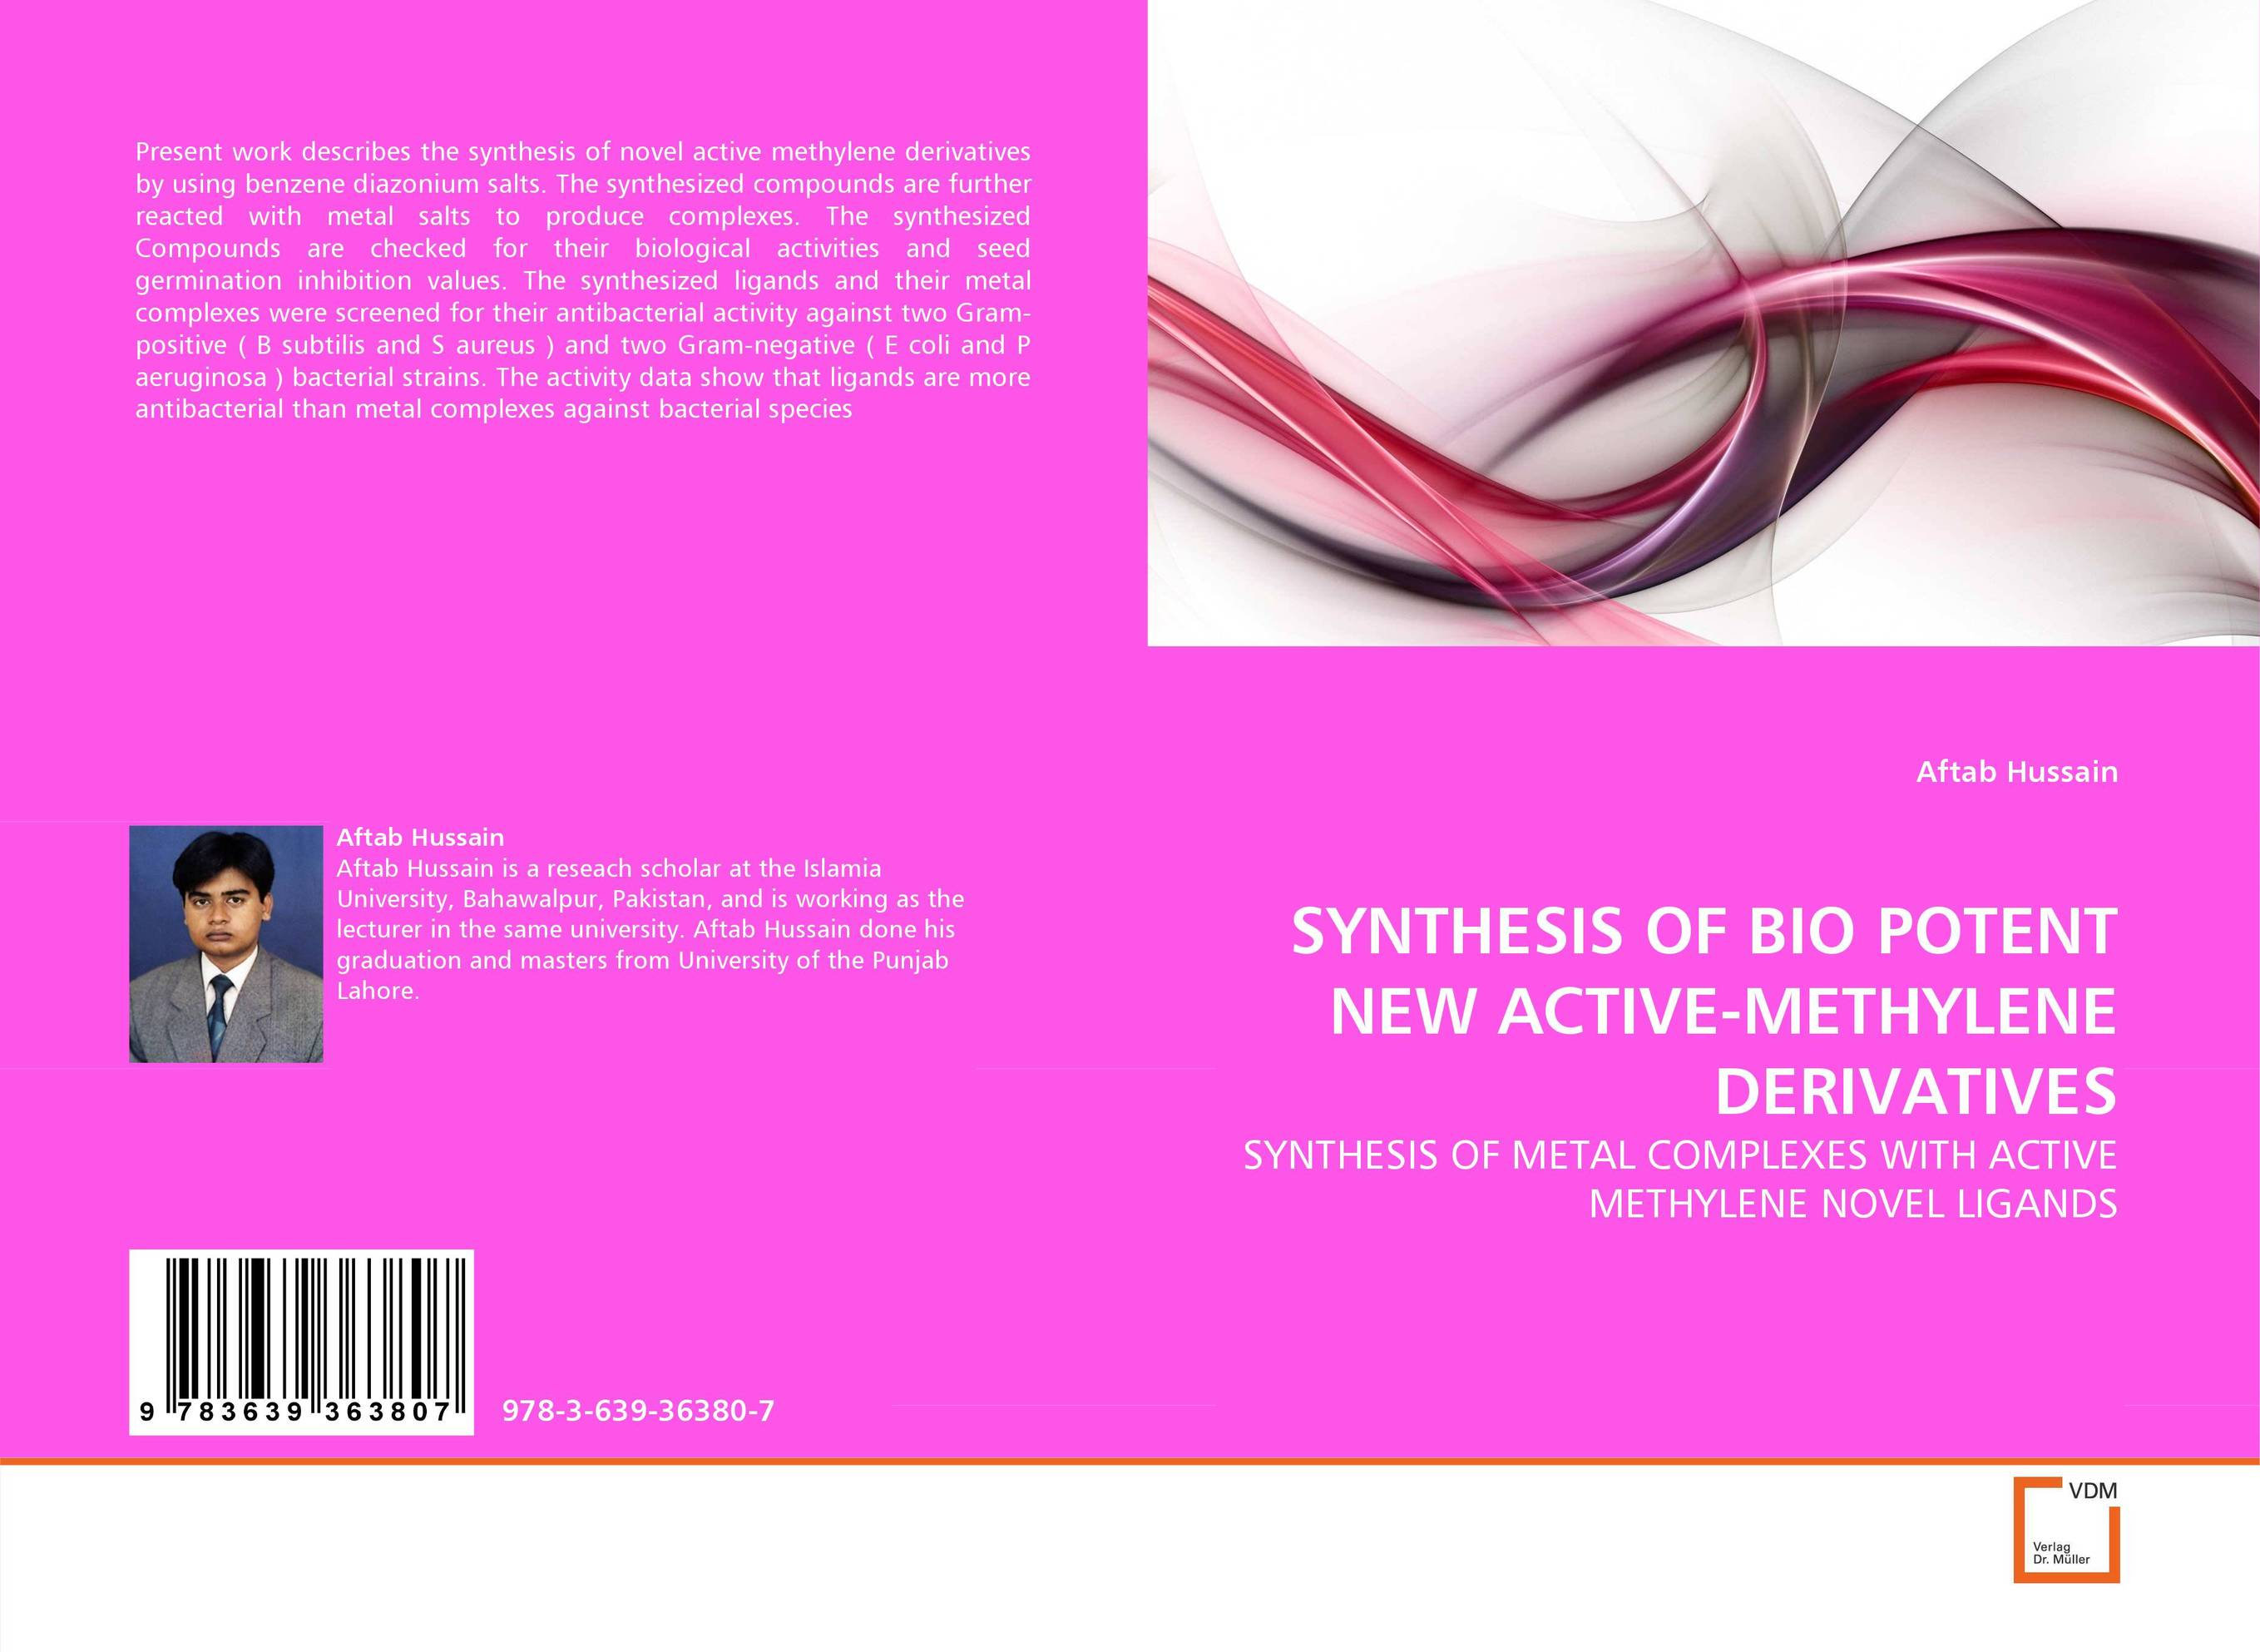 SYNTHESIS OF BIO POTENT NEW ACTIVE-METHYLENE DERIVATIVES купить